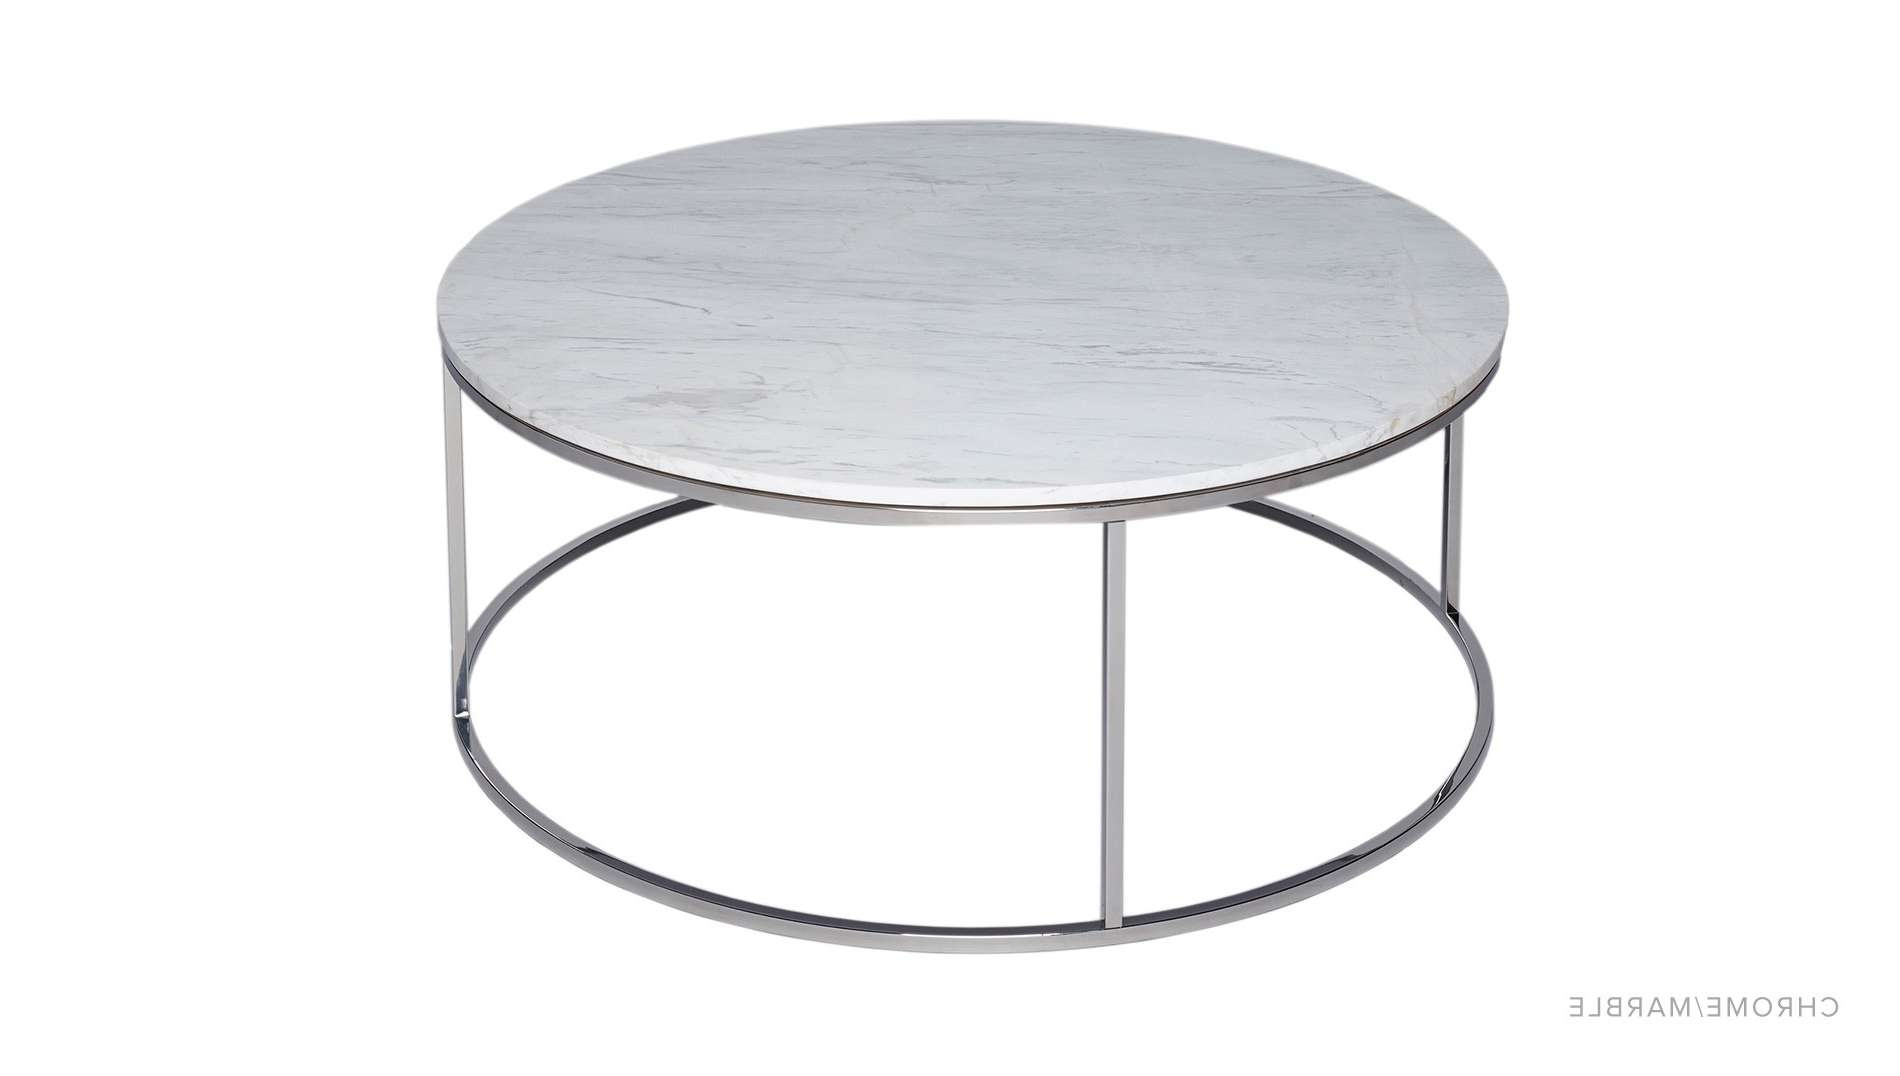 Coffee Tables : Table White Round Coffee Modern Traditional Medium Inside Popular Round Chrome Coffee Tables (View 6 of 20)